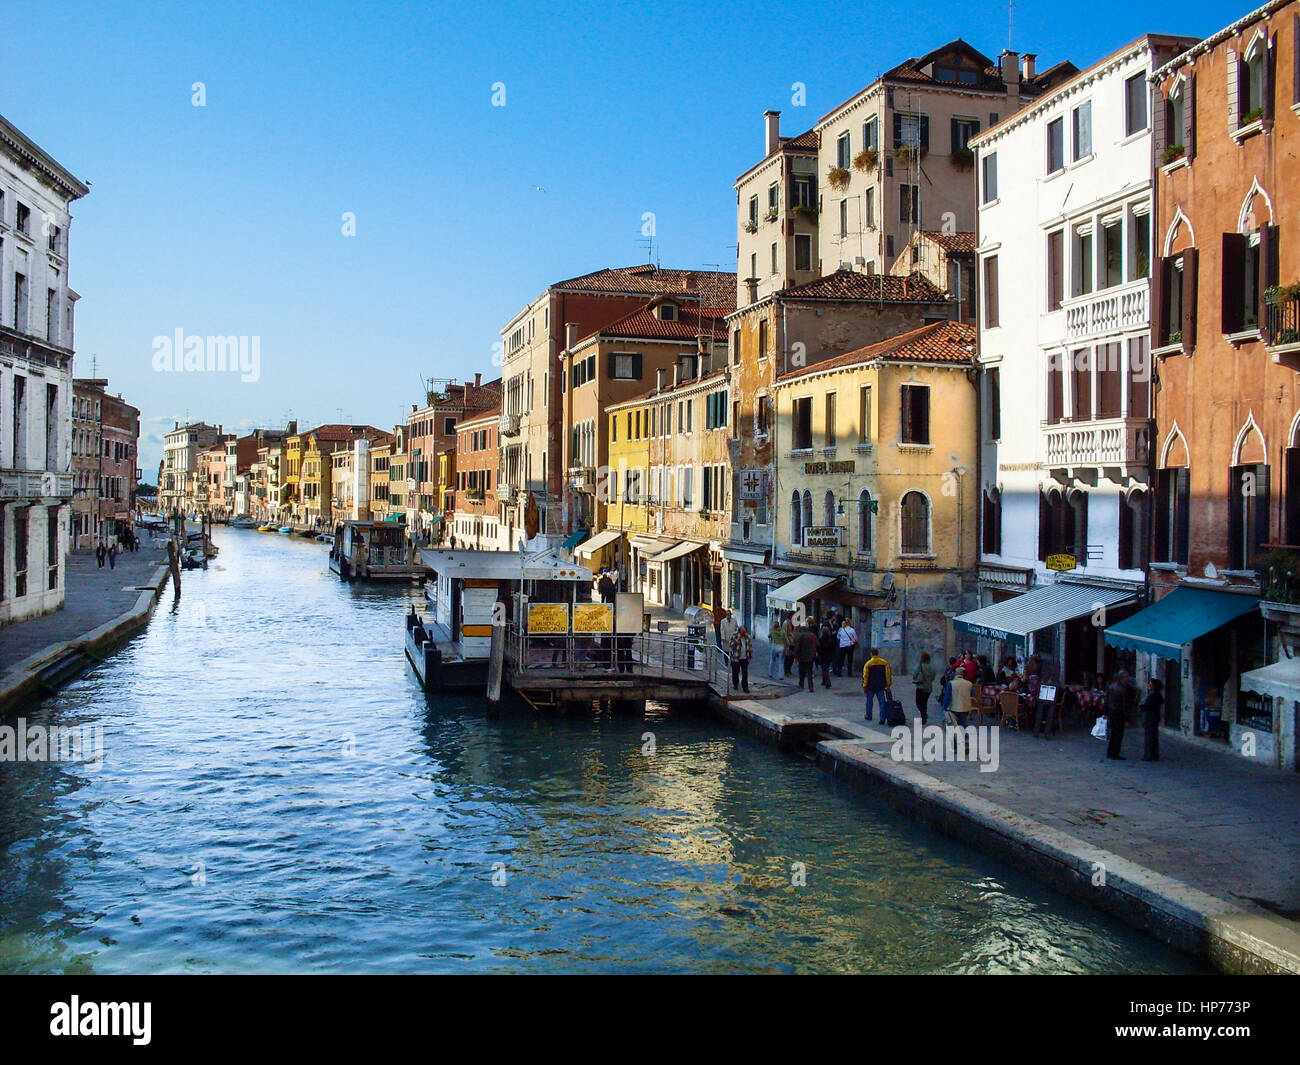 Venice, Italy – October  04, 2008 - Stock Image